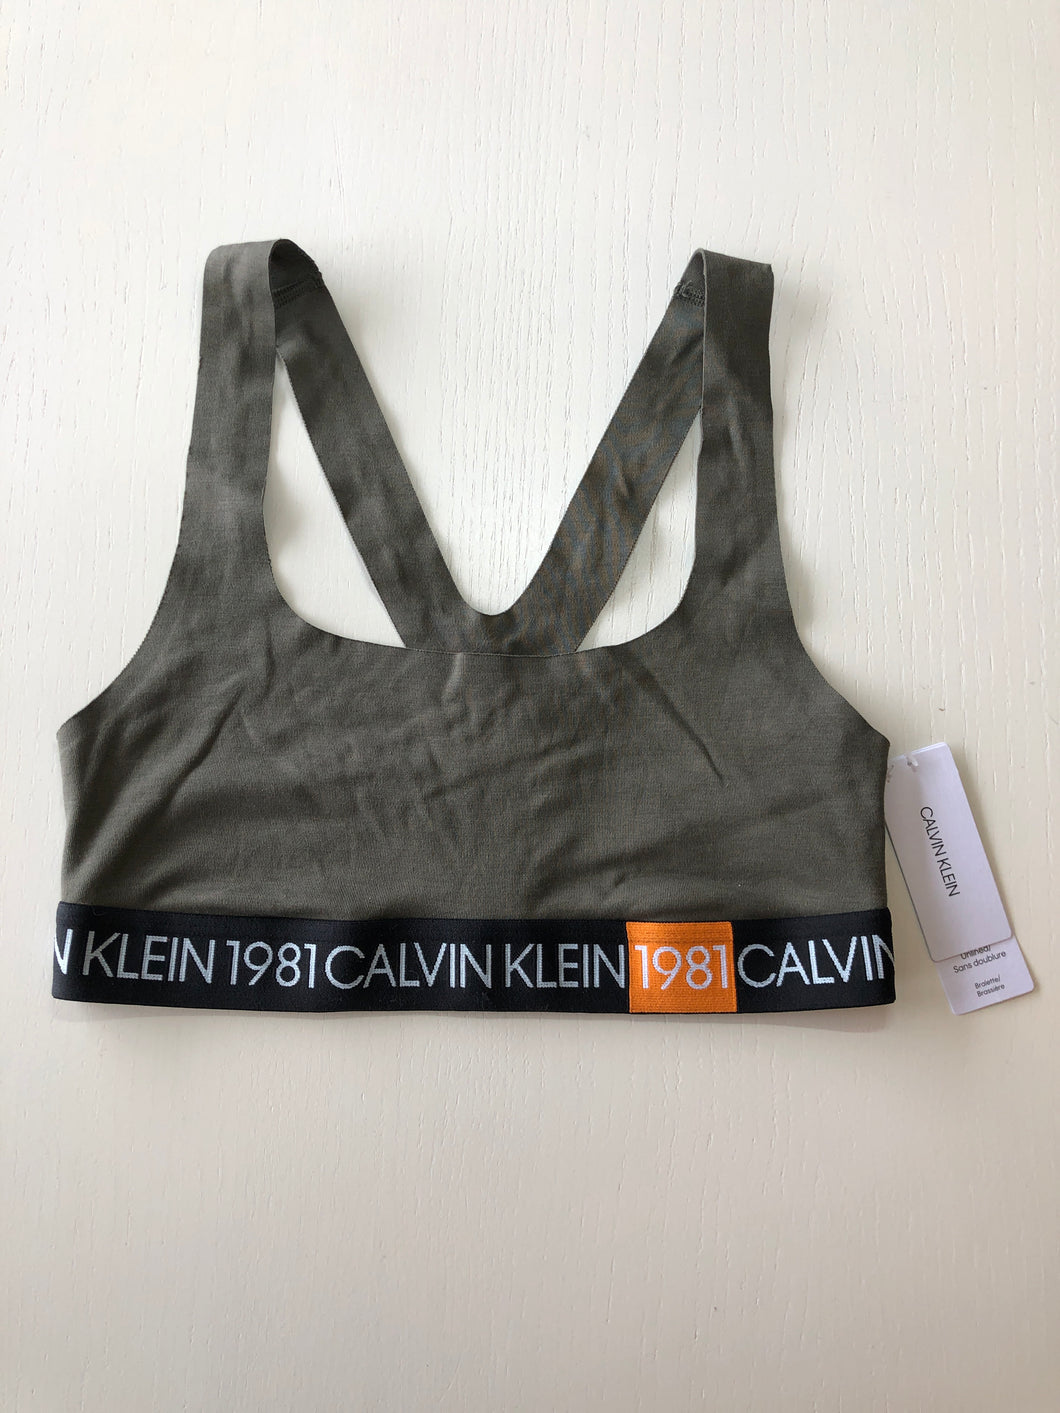 Previously Owned With Tags Women's Calvin Klein Bralette Size M